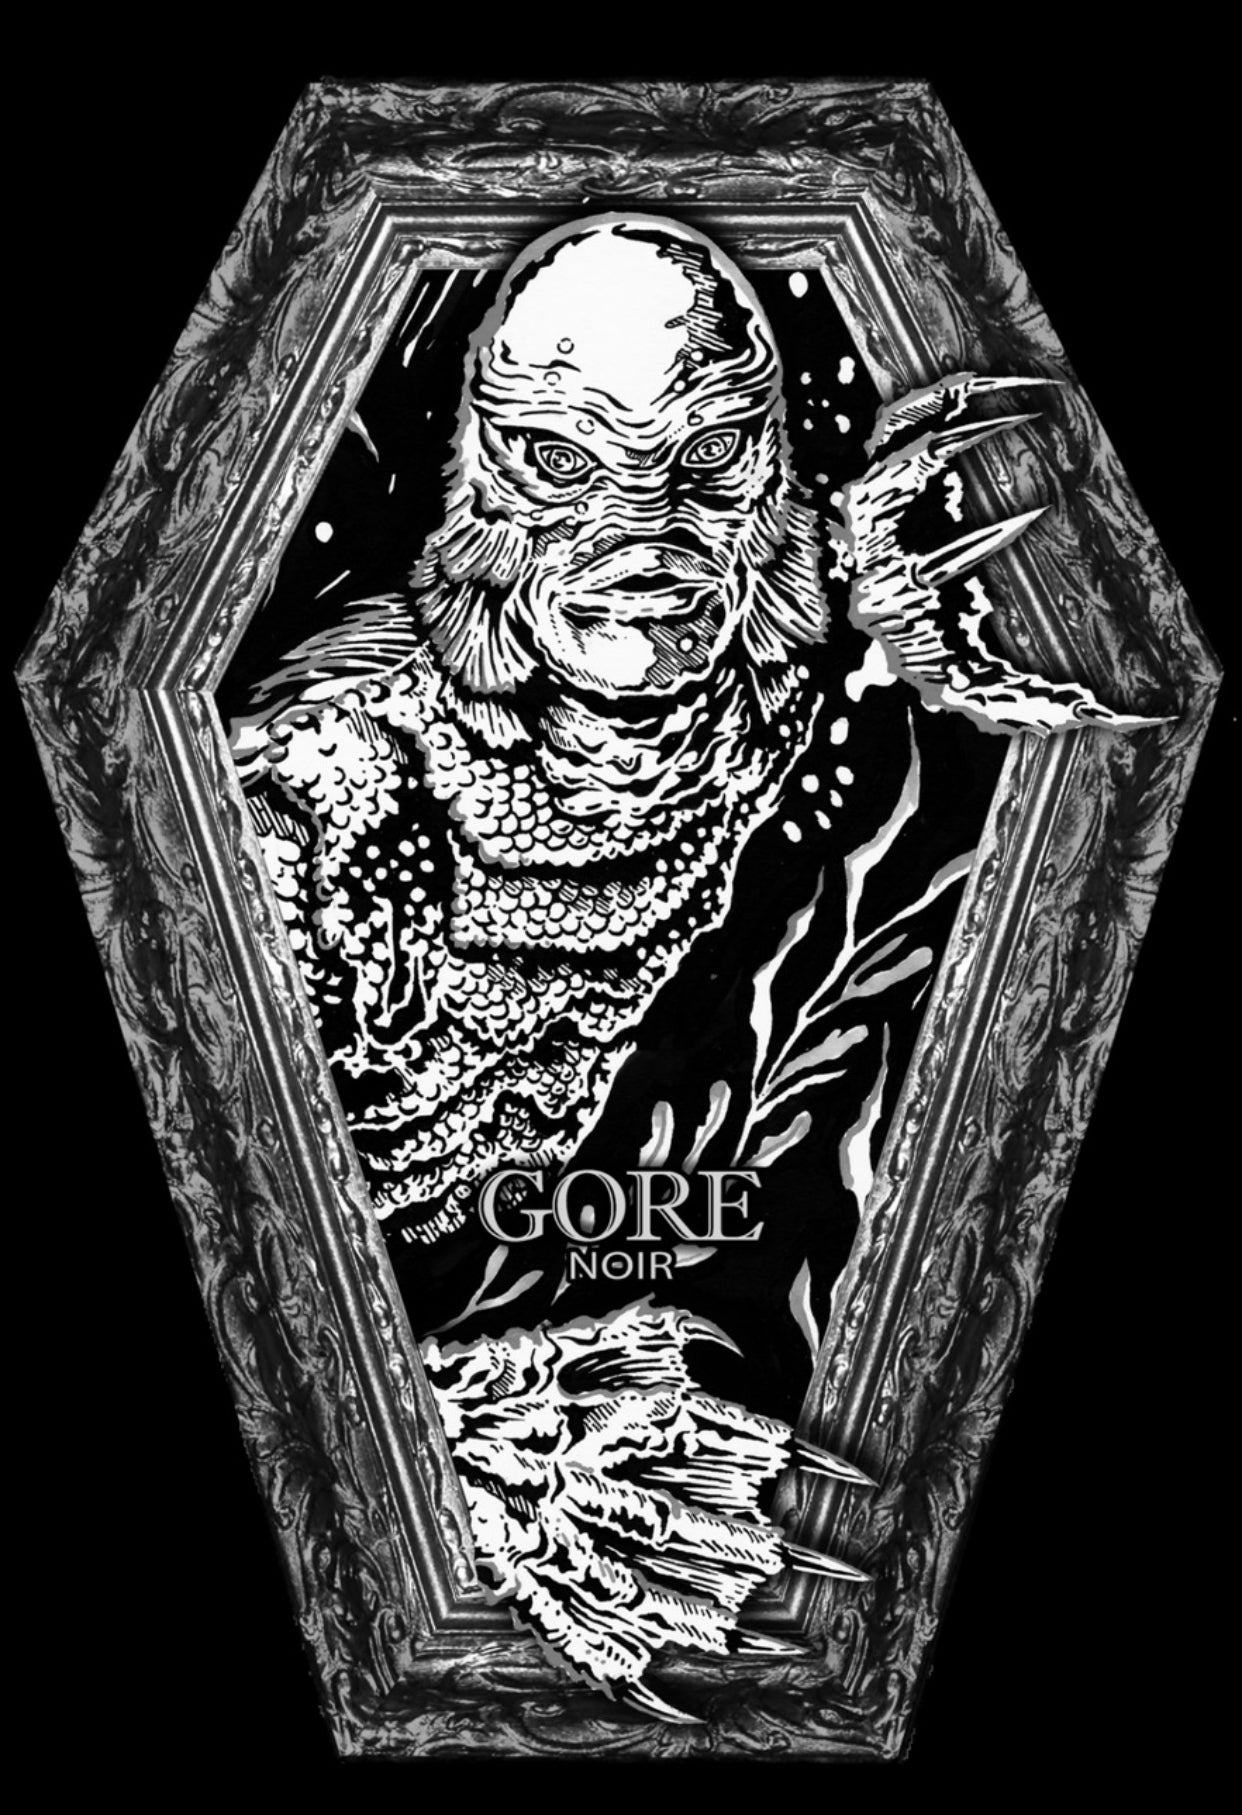 Image of Creature Coffin shaped Black and White issue